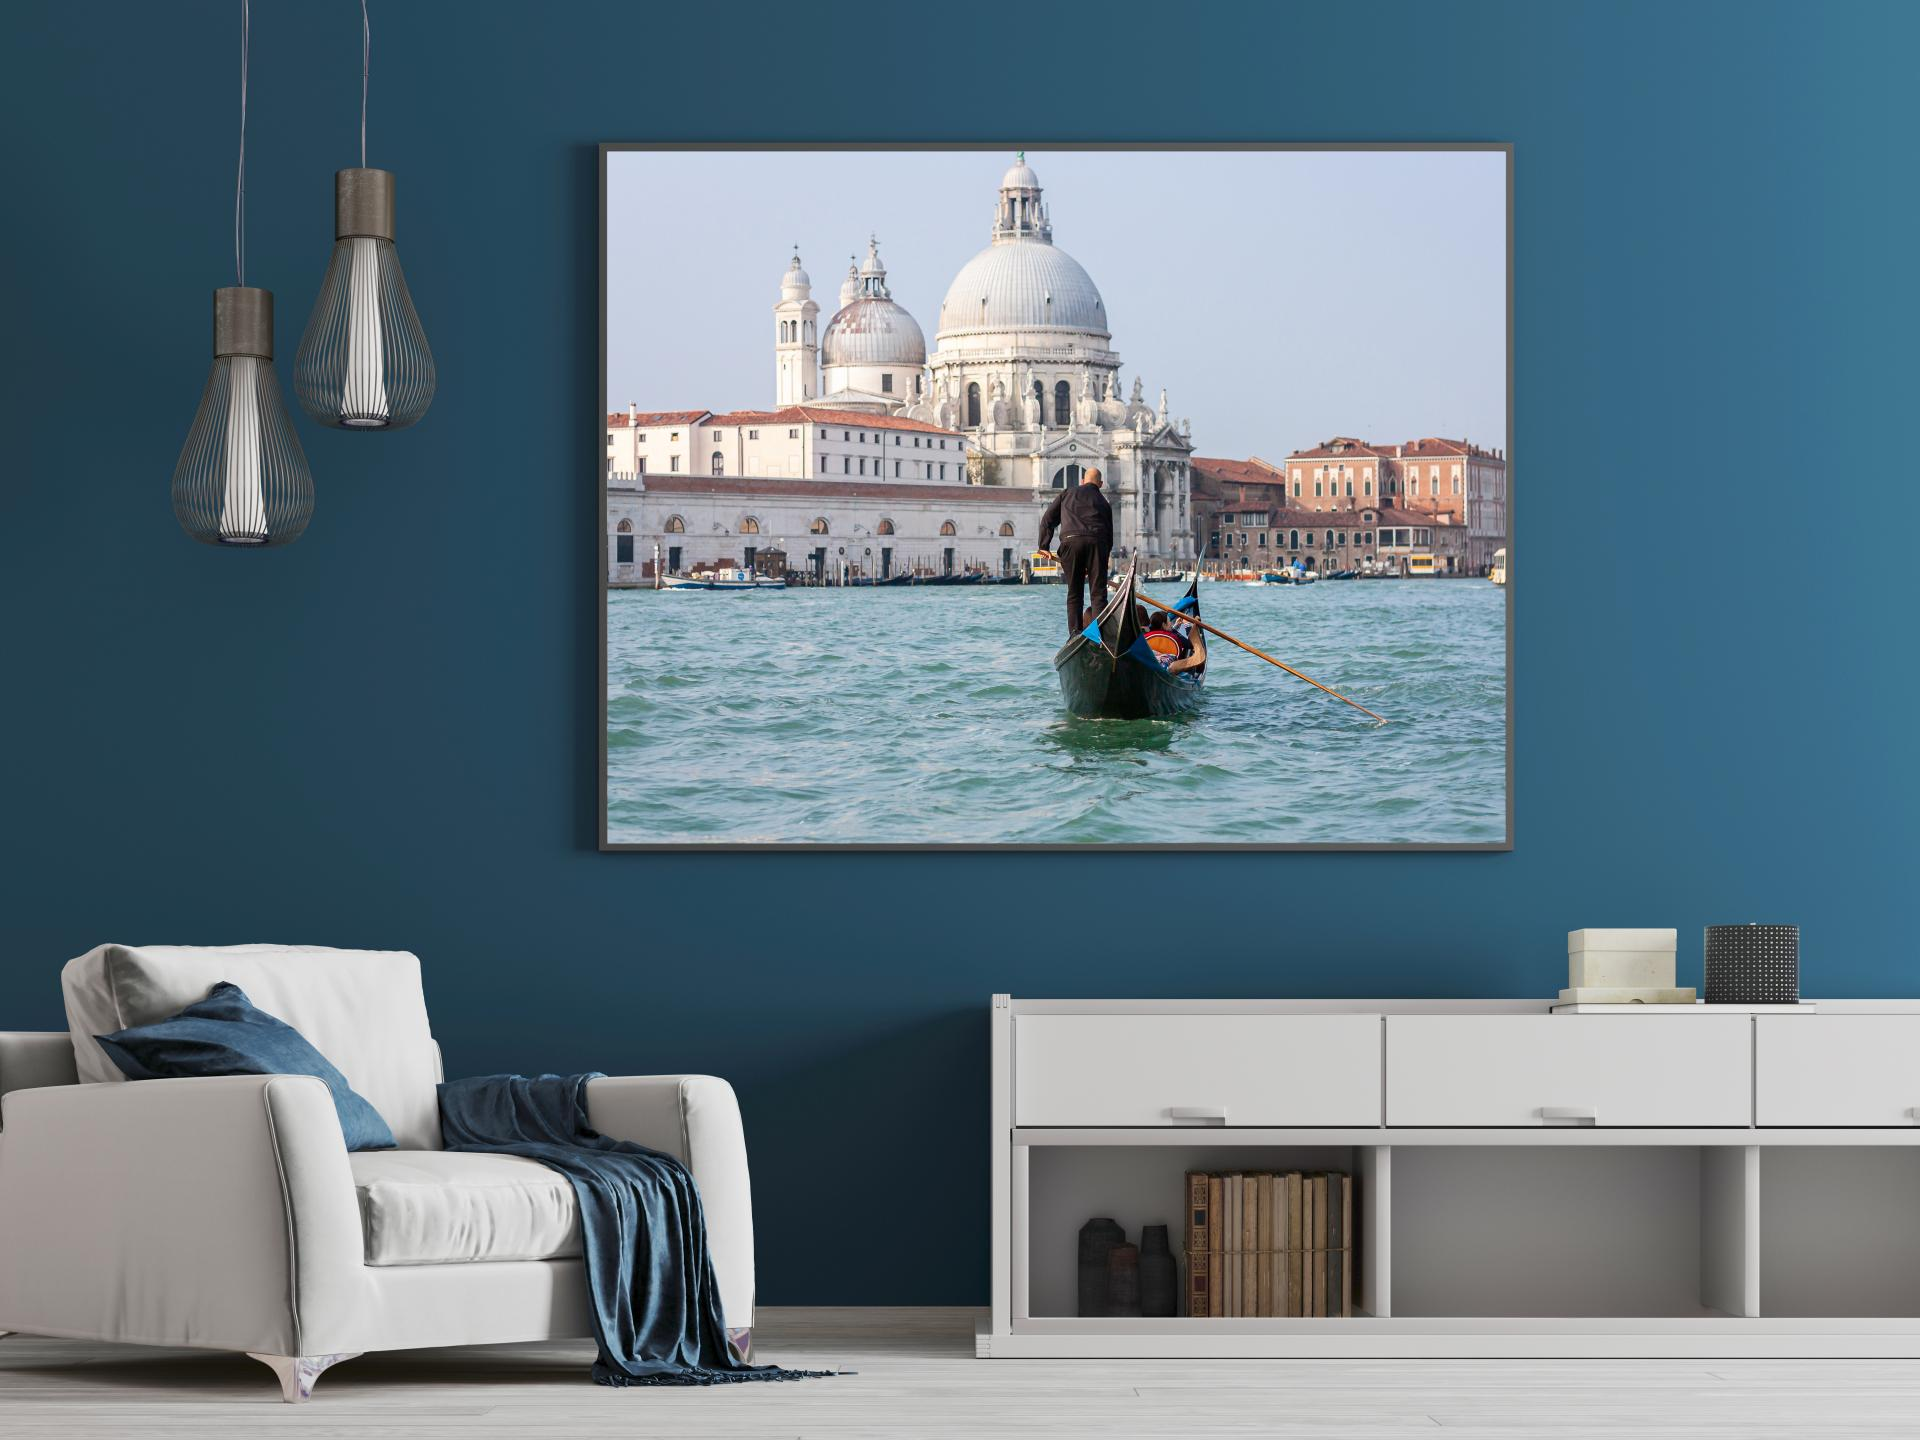 Gondola being rowed out in the water in Venice, bright colours, blue water. Liane Ryan Photography